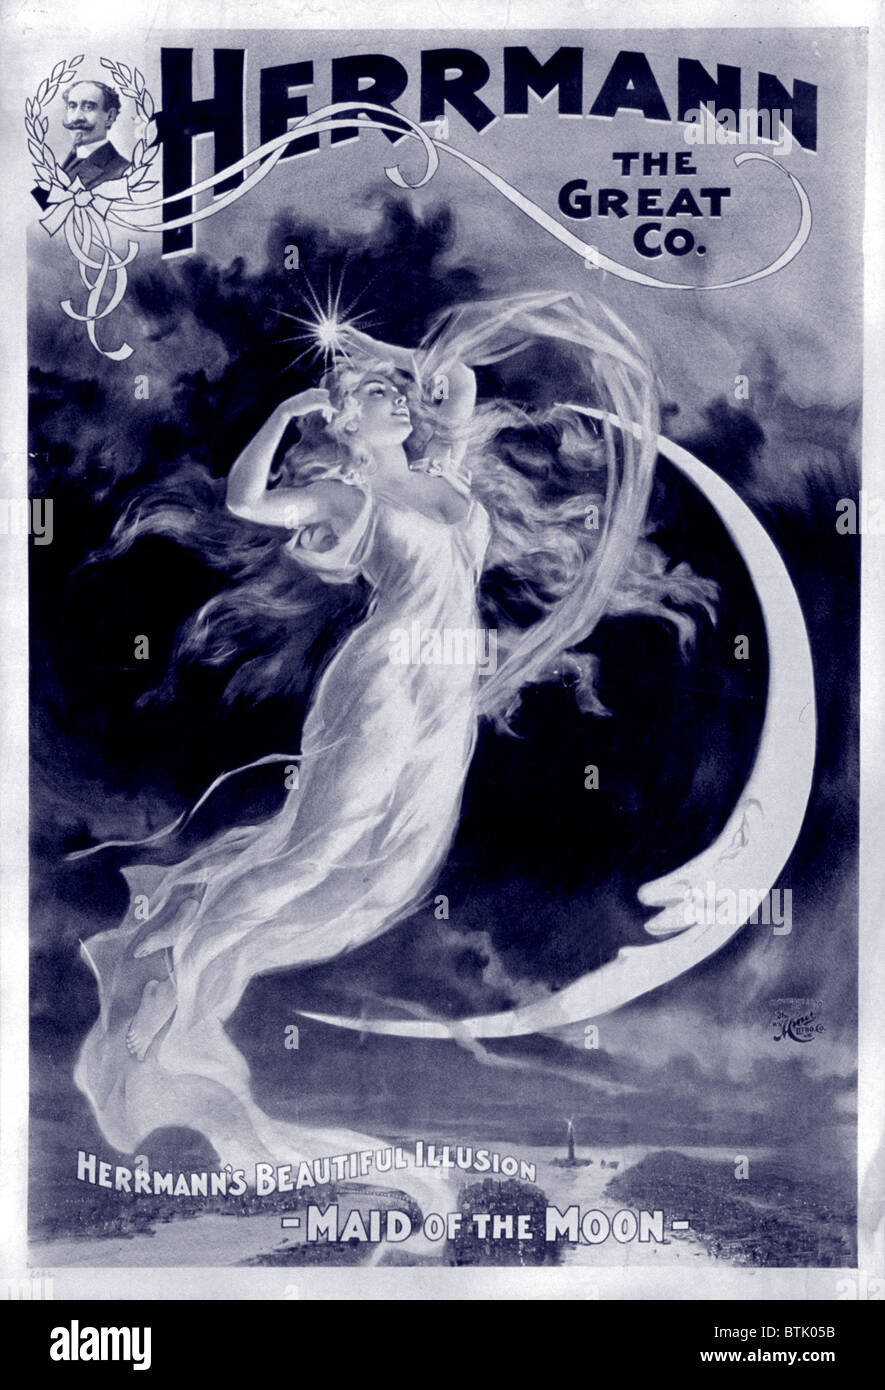 Herrmann the Great, Herrmann's Beautiful Illusion - Maid of the Moon, by The H.C. Miner Lithograph Company, - Stock Image